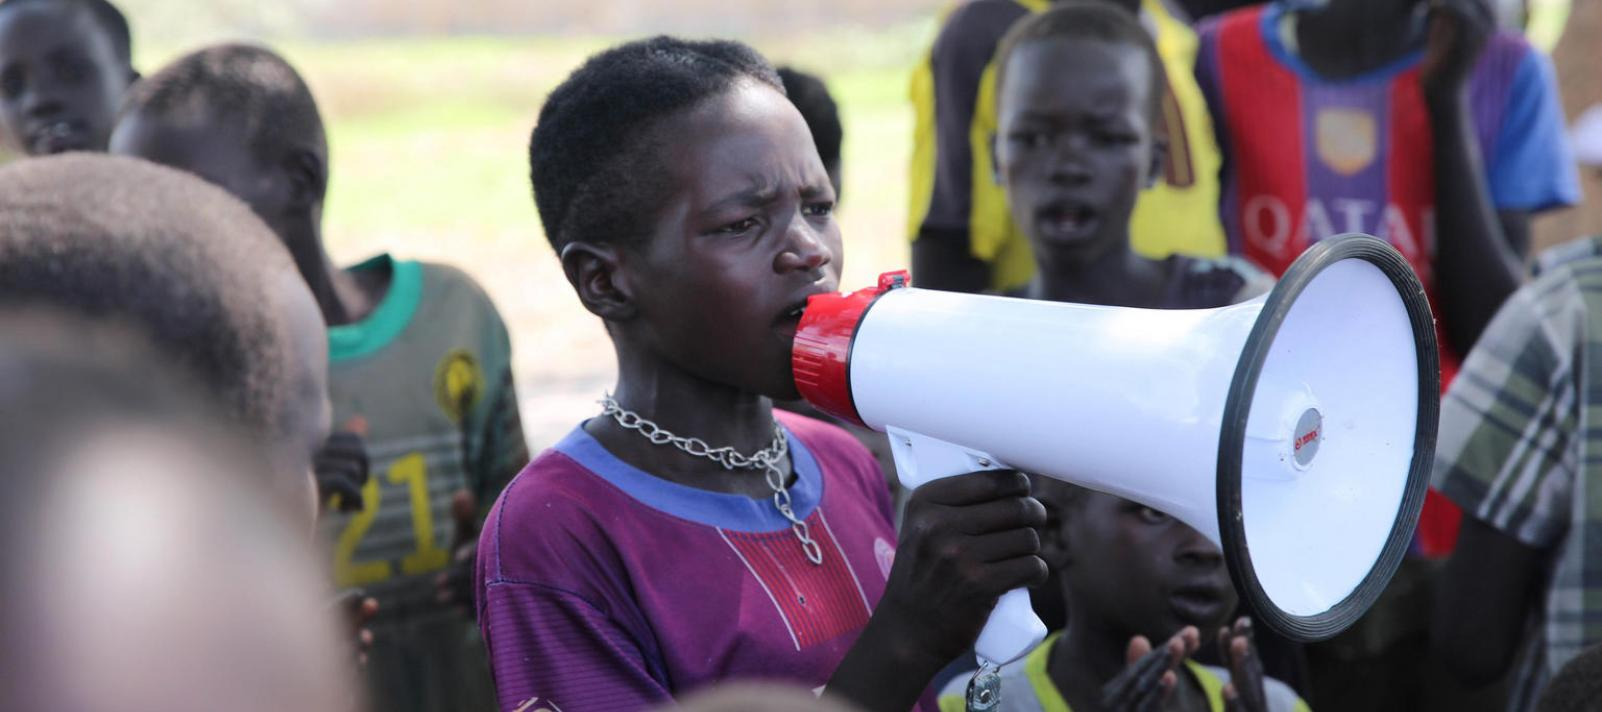 Children advovate through songs and messages promoting a back-to-school initiative